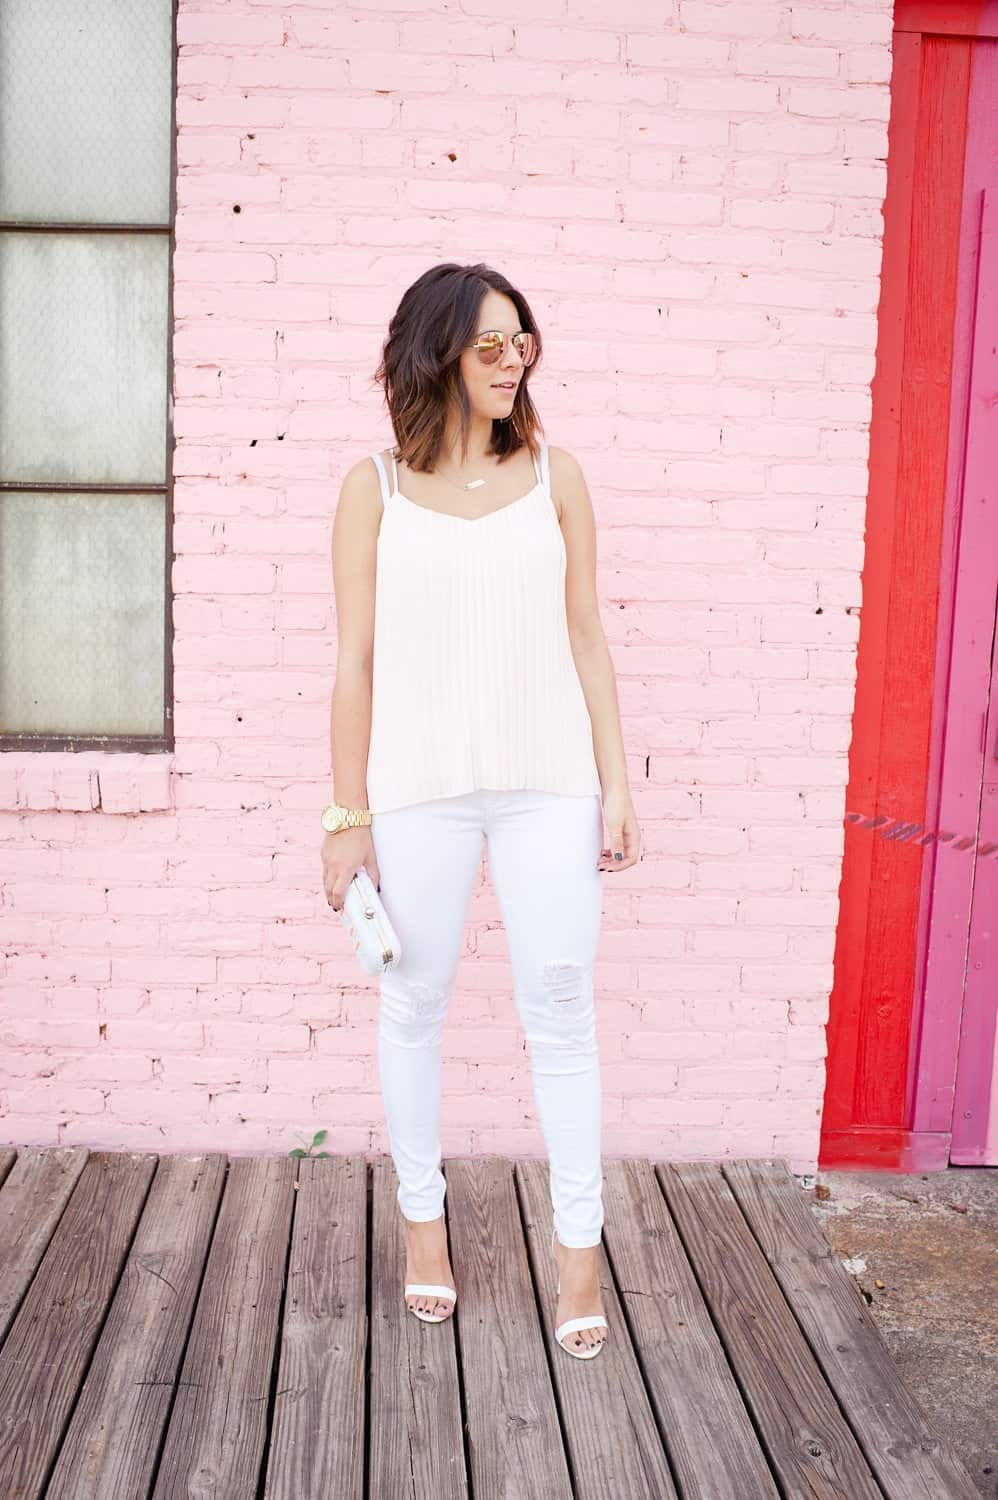 Express pleated blush top and white jeans via @mystylevita [My Style Vita]